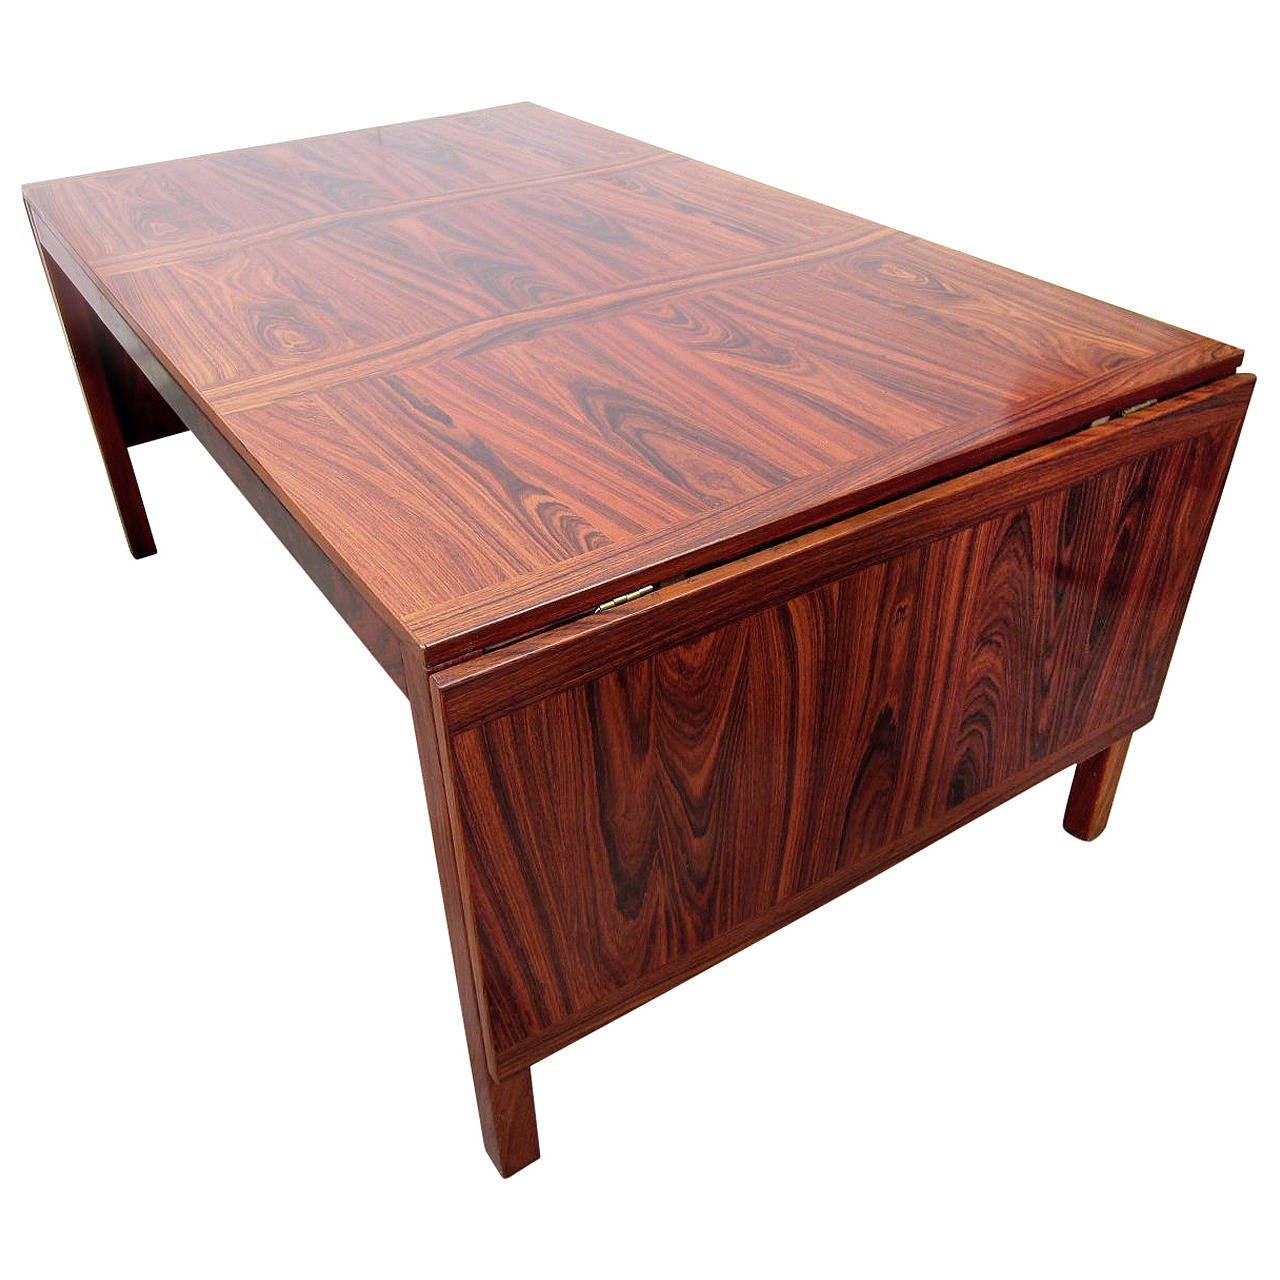 Mid century danish modern eight foot rosewood dining table for Mid century modern dining table